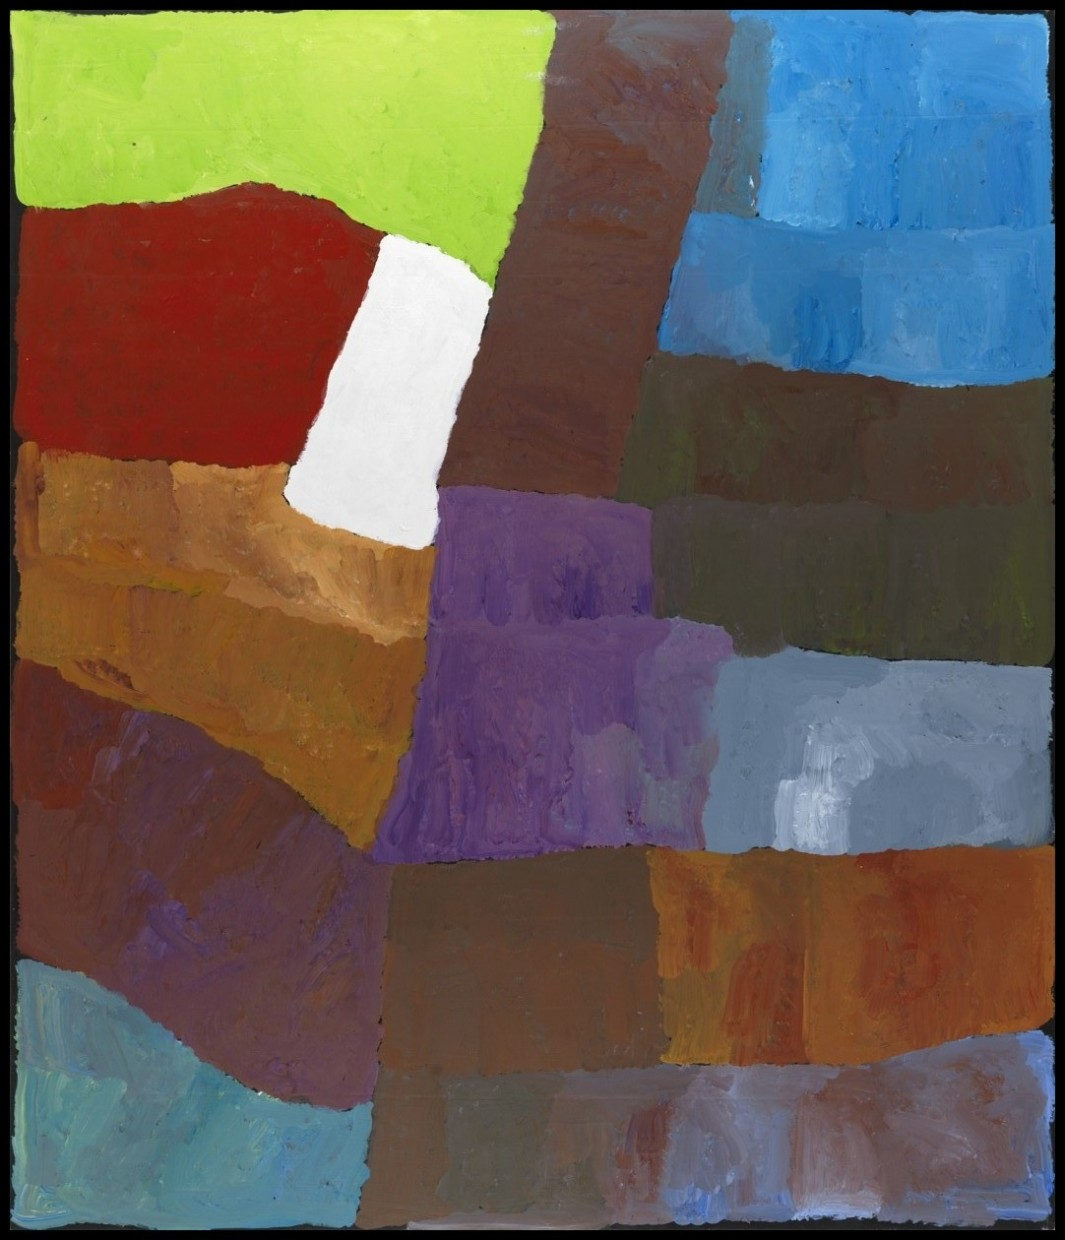 Kudditji Kngwarreye: My Country